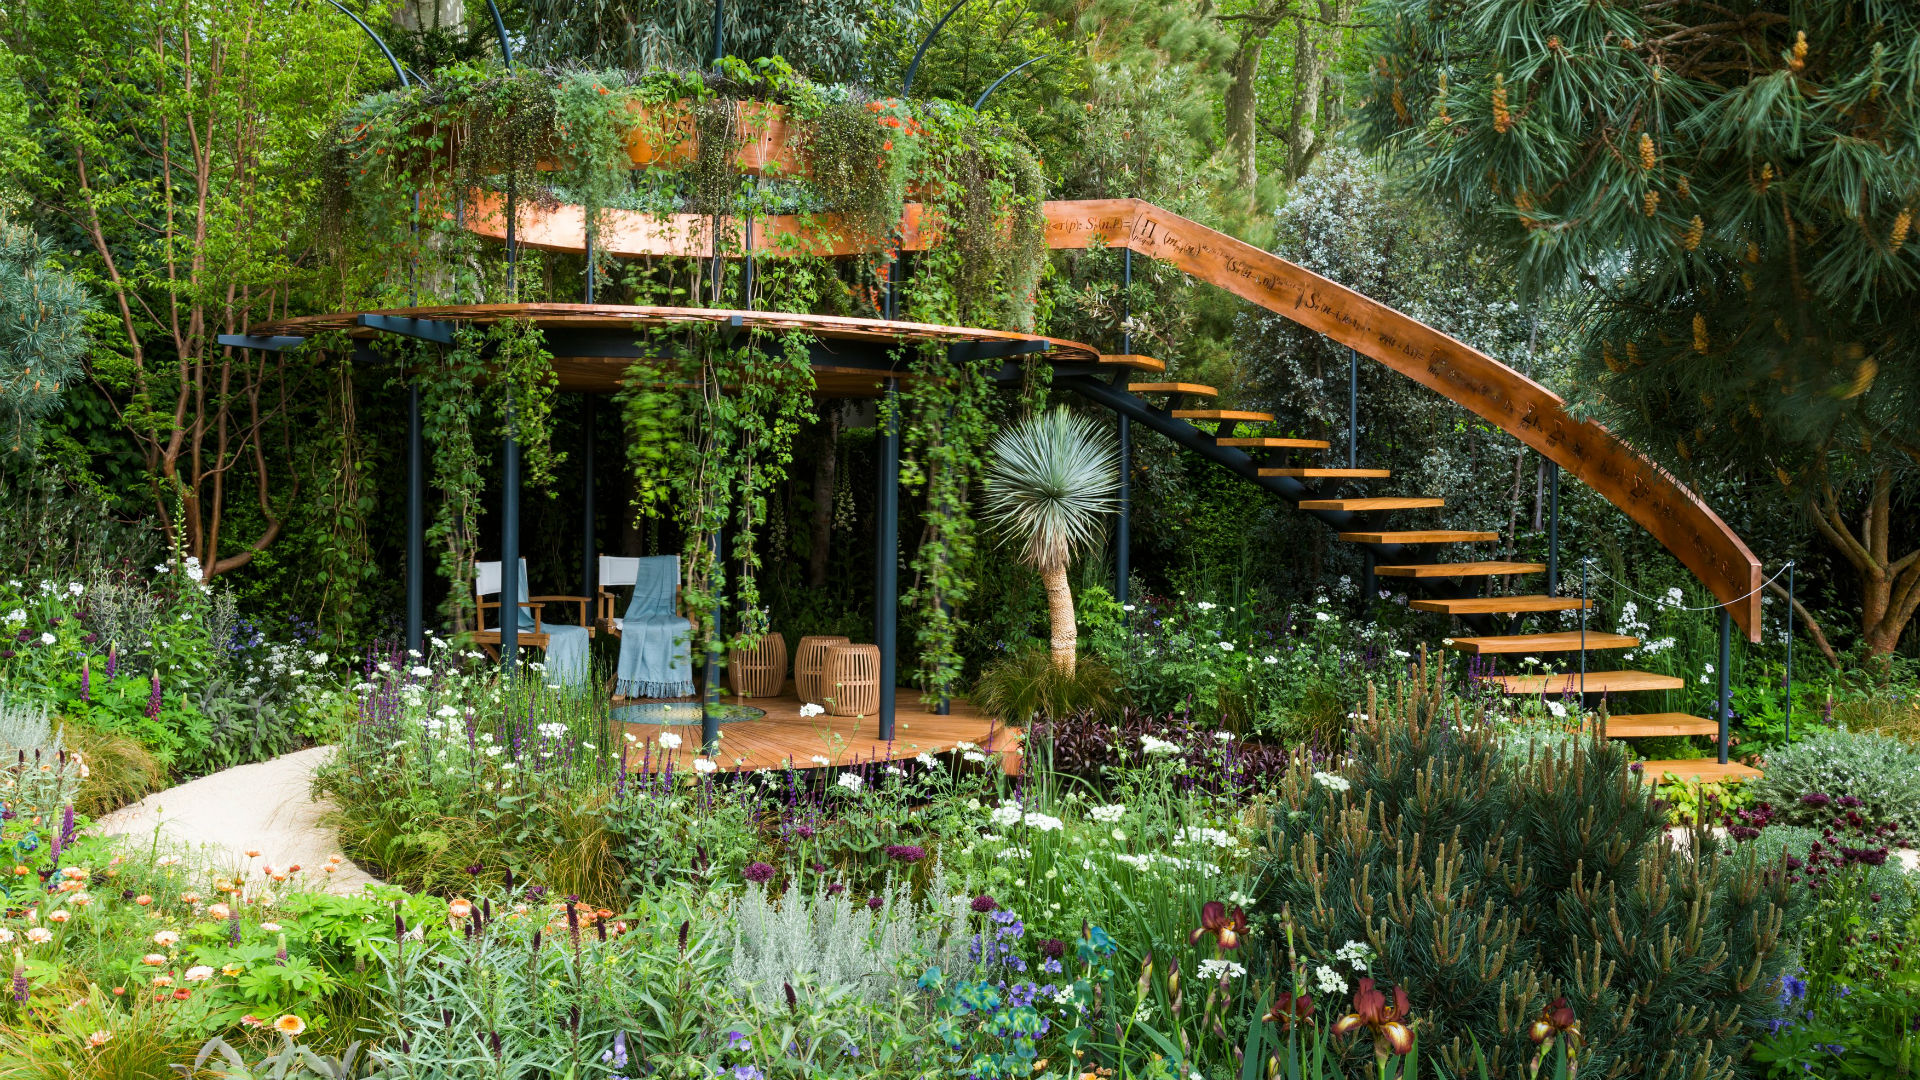 rhs chelsea flower show 2019 - special event